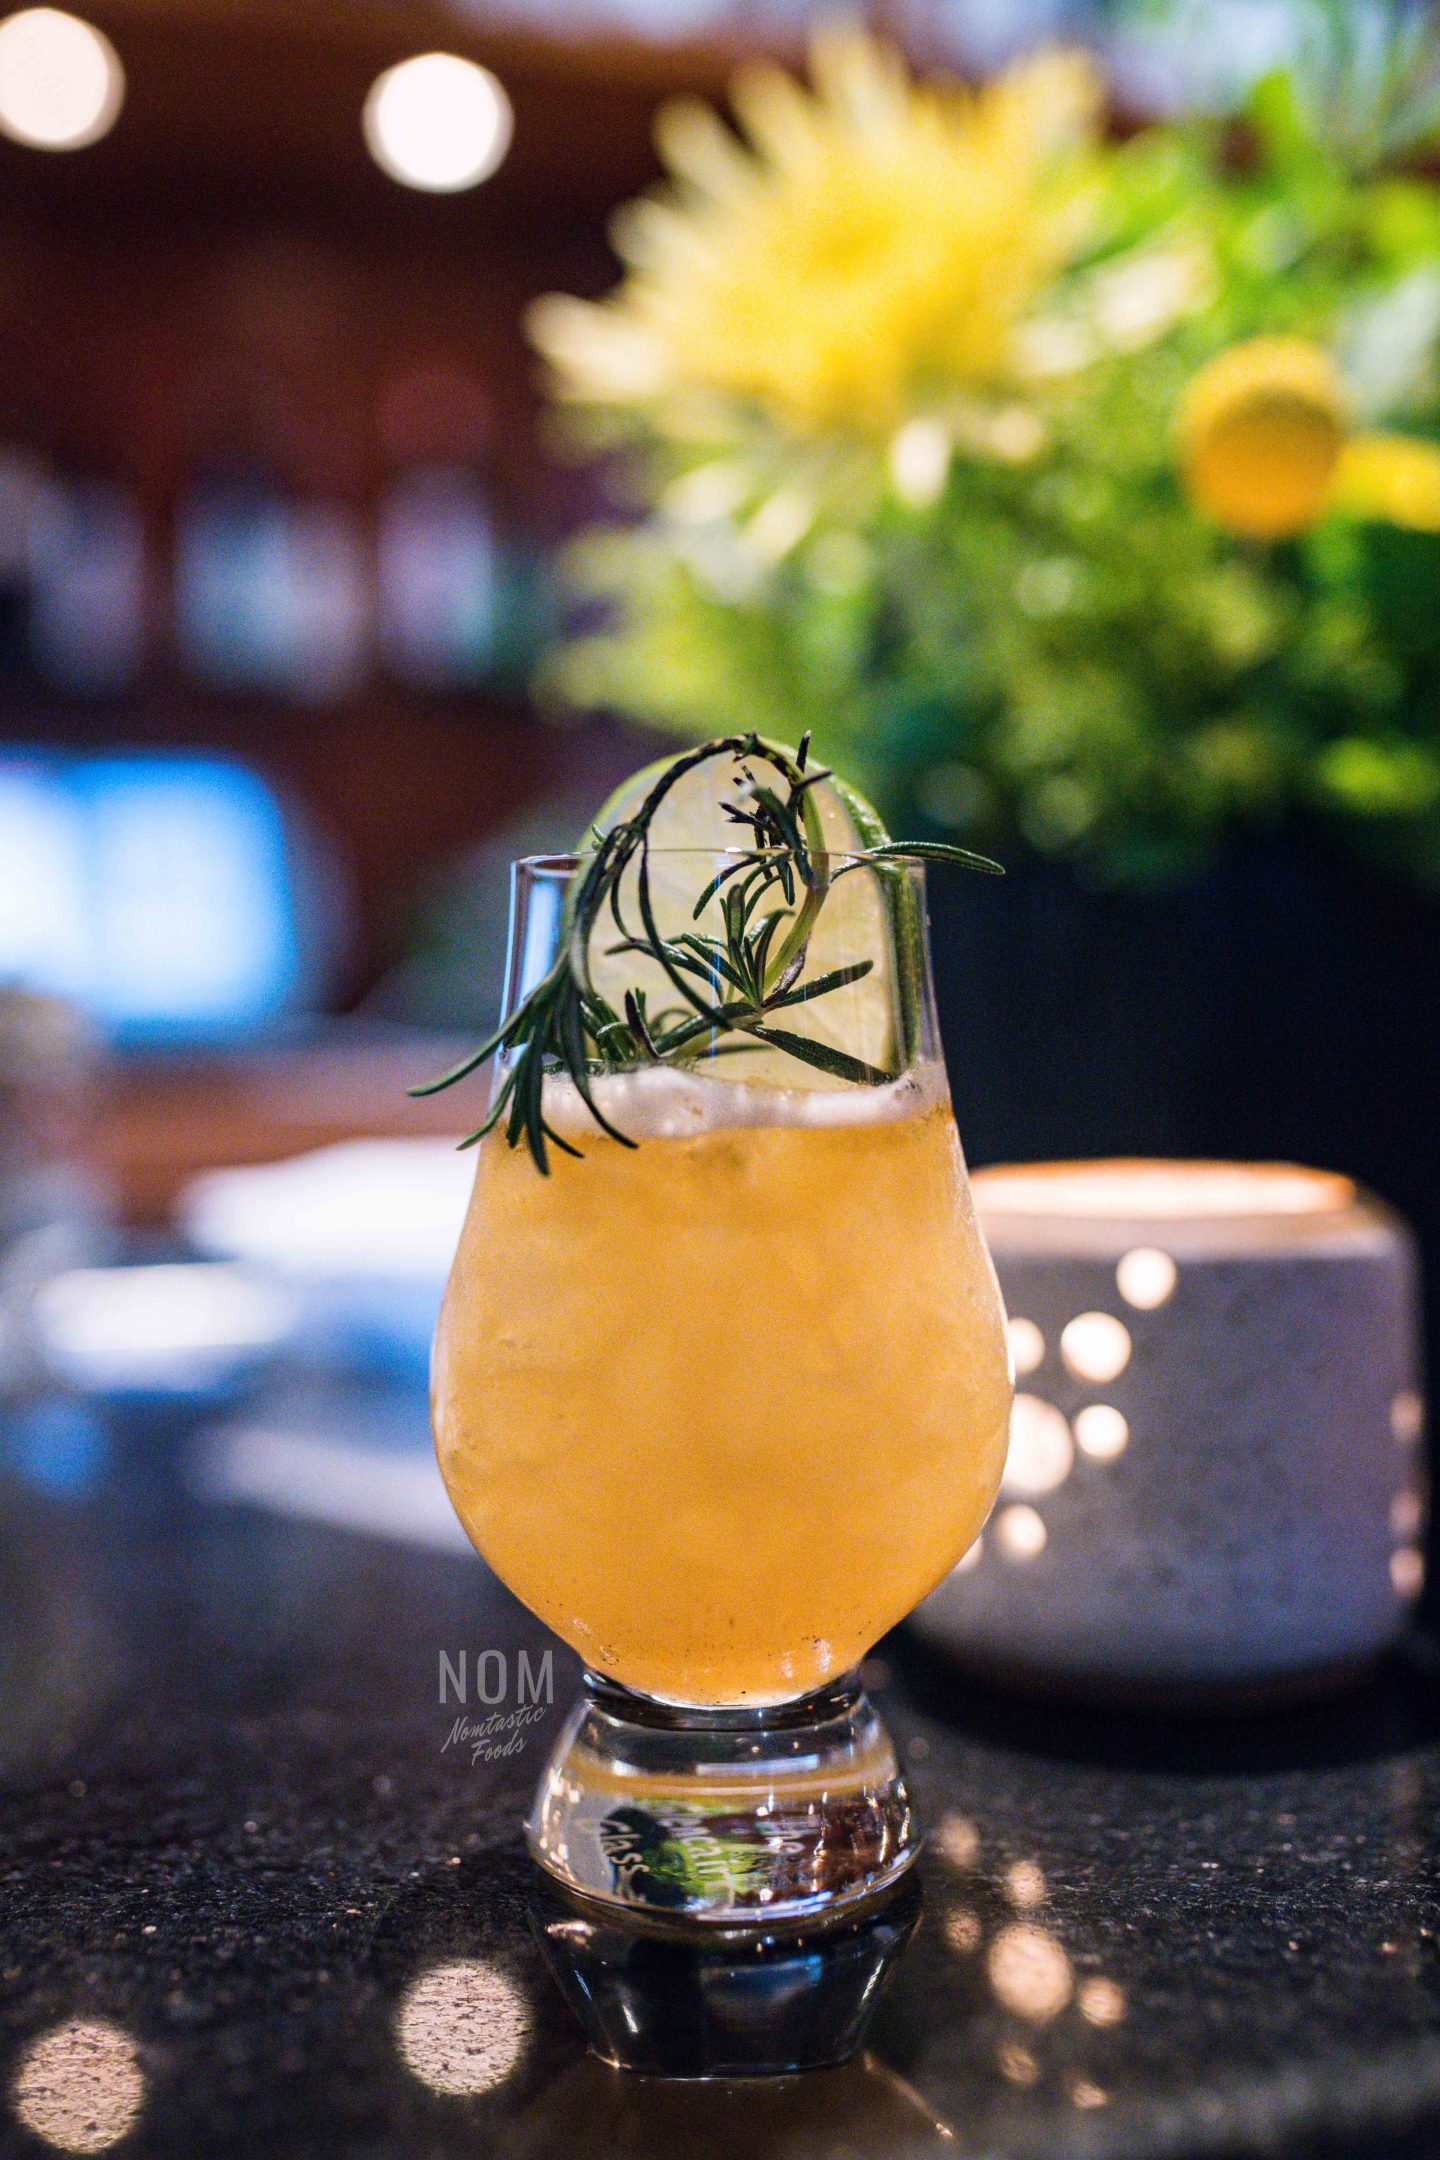 Alexander's Steakhouse Roasted Pineapple cocktail